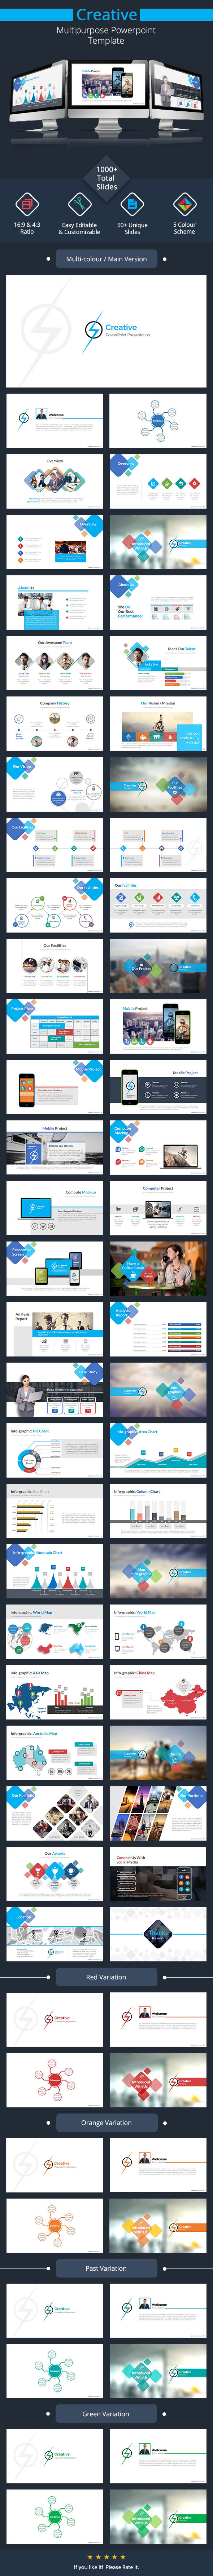 GraphicRiver Creative Powerpoint Presentation 11363369